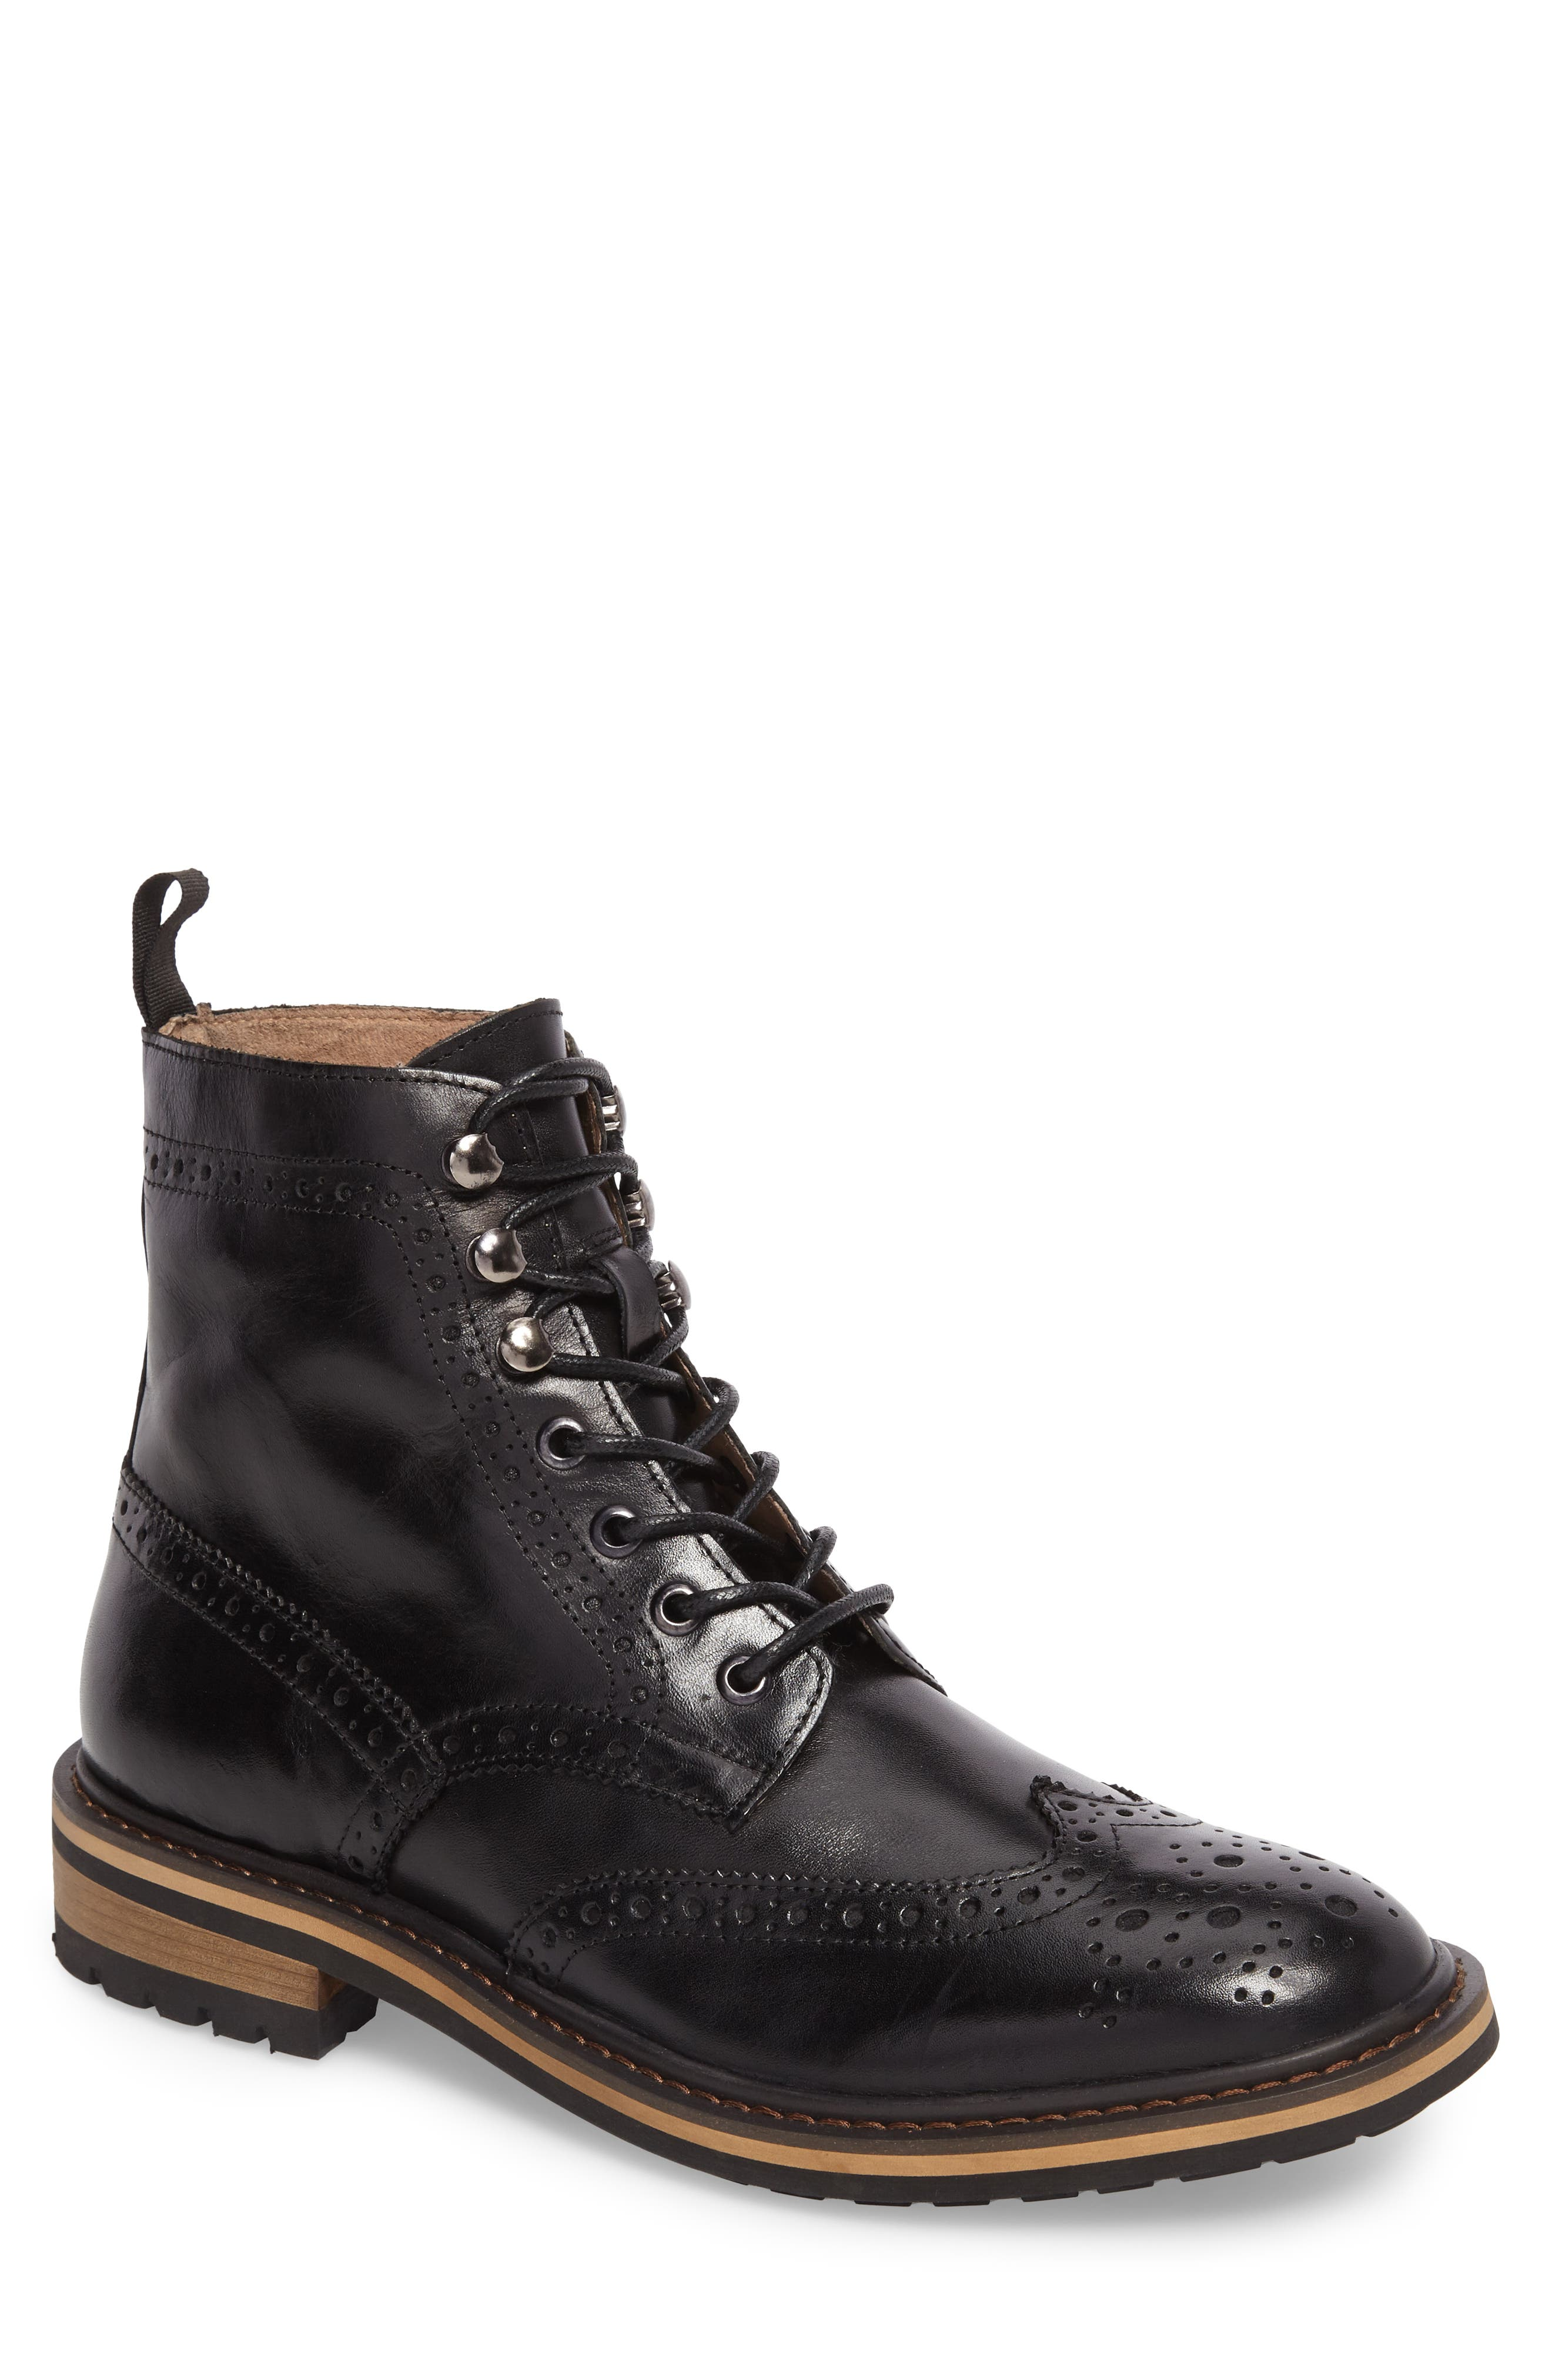 Grange Wingtip Boot,                             Main thumbnail 1, color,                             Black Smooth Leather